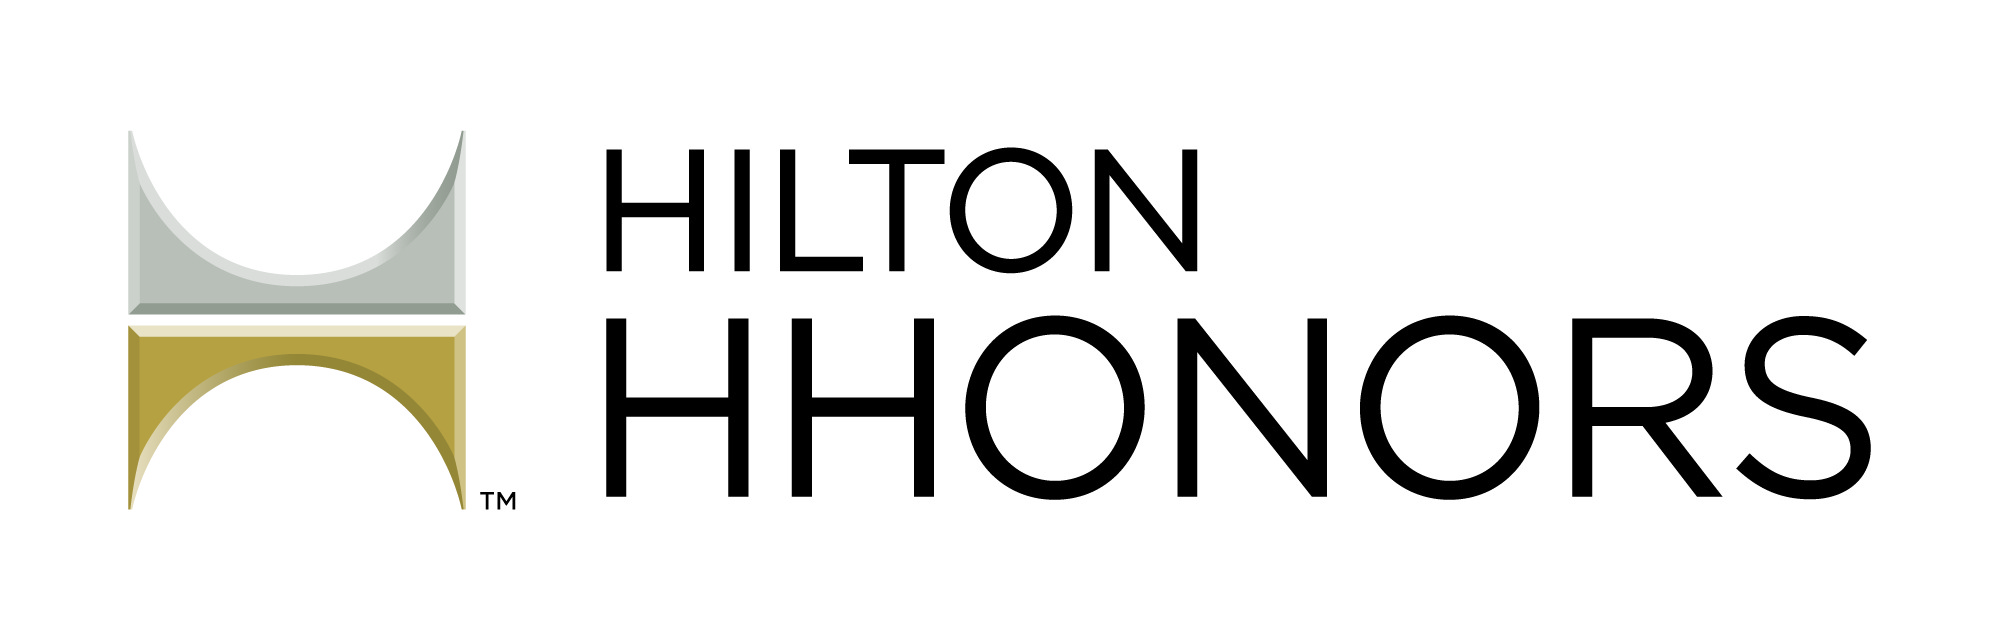 Hilton Honors Winback Promotion: Earn Up to 50,000 Points (Targeted)